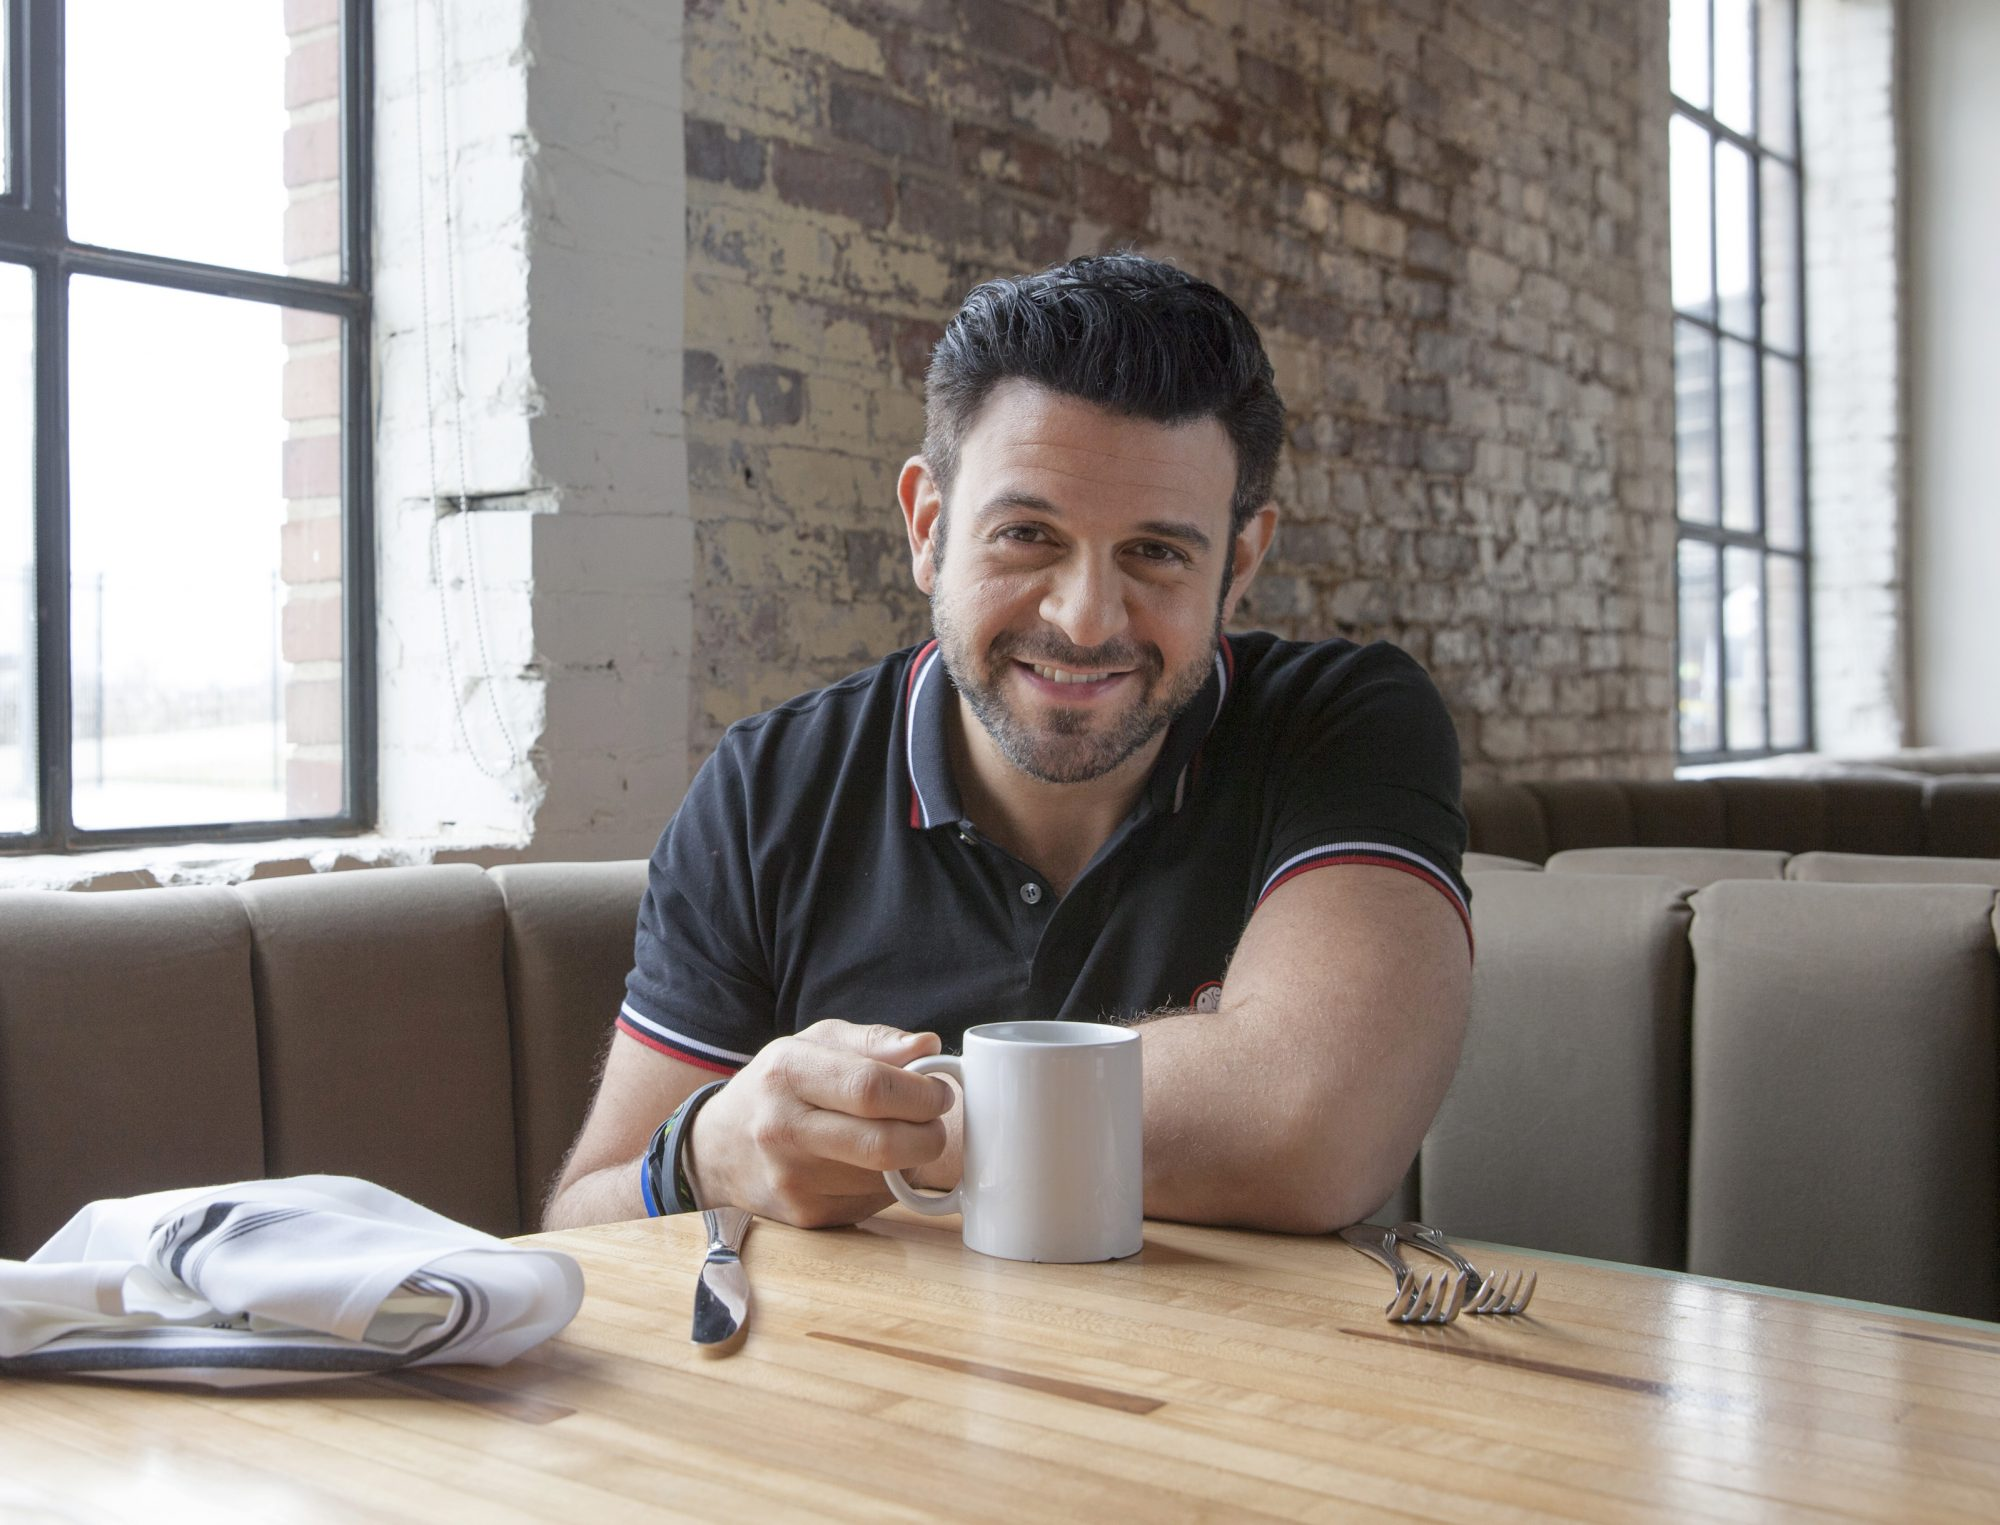 Adam Richman sitting in a booth with a mug on the table